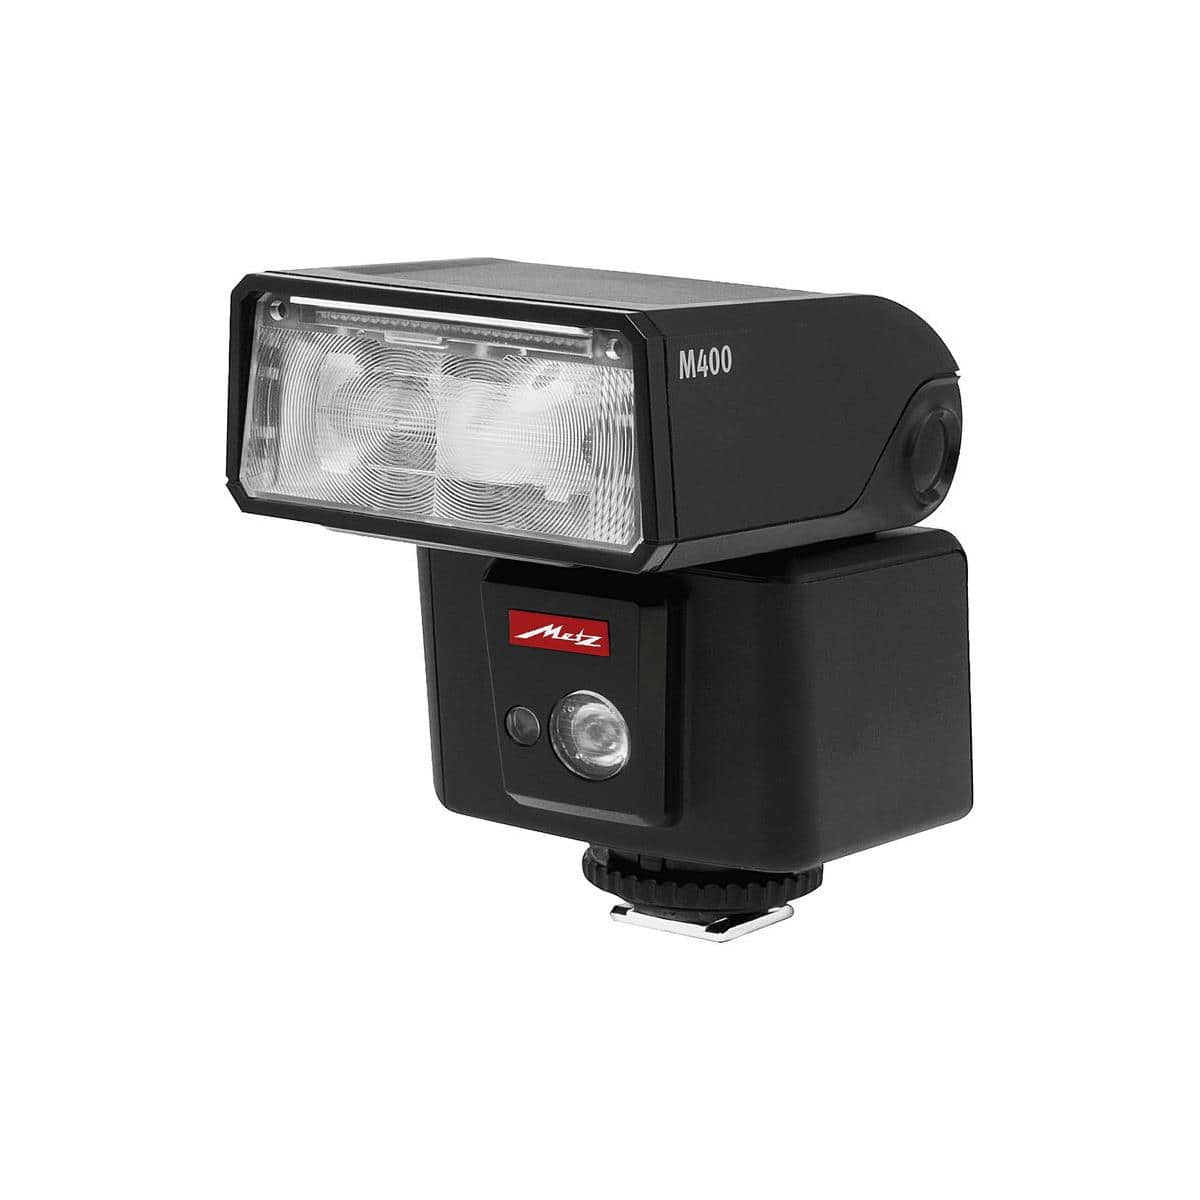 Pro Photo Lighting Clearance: Mets, Lowel, Wescott, Foba, Lumos, Hensel, Kino, Cool-Lux from $100 + free s/h